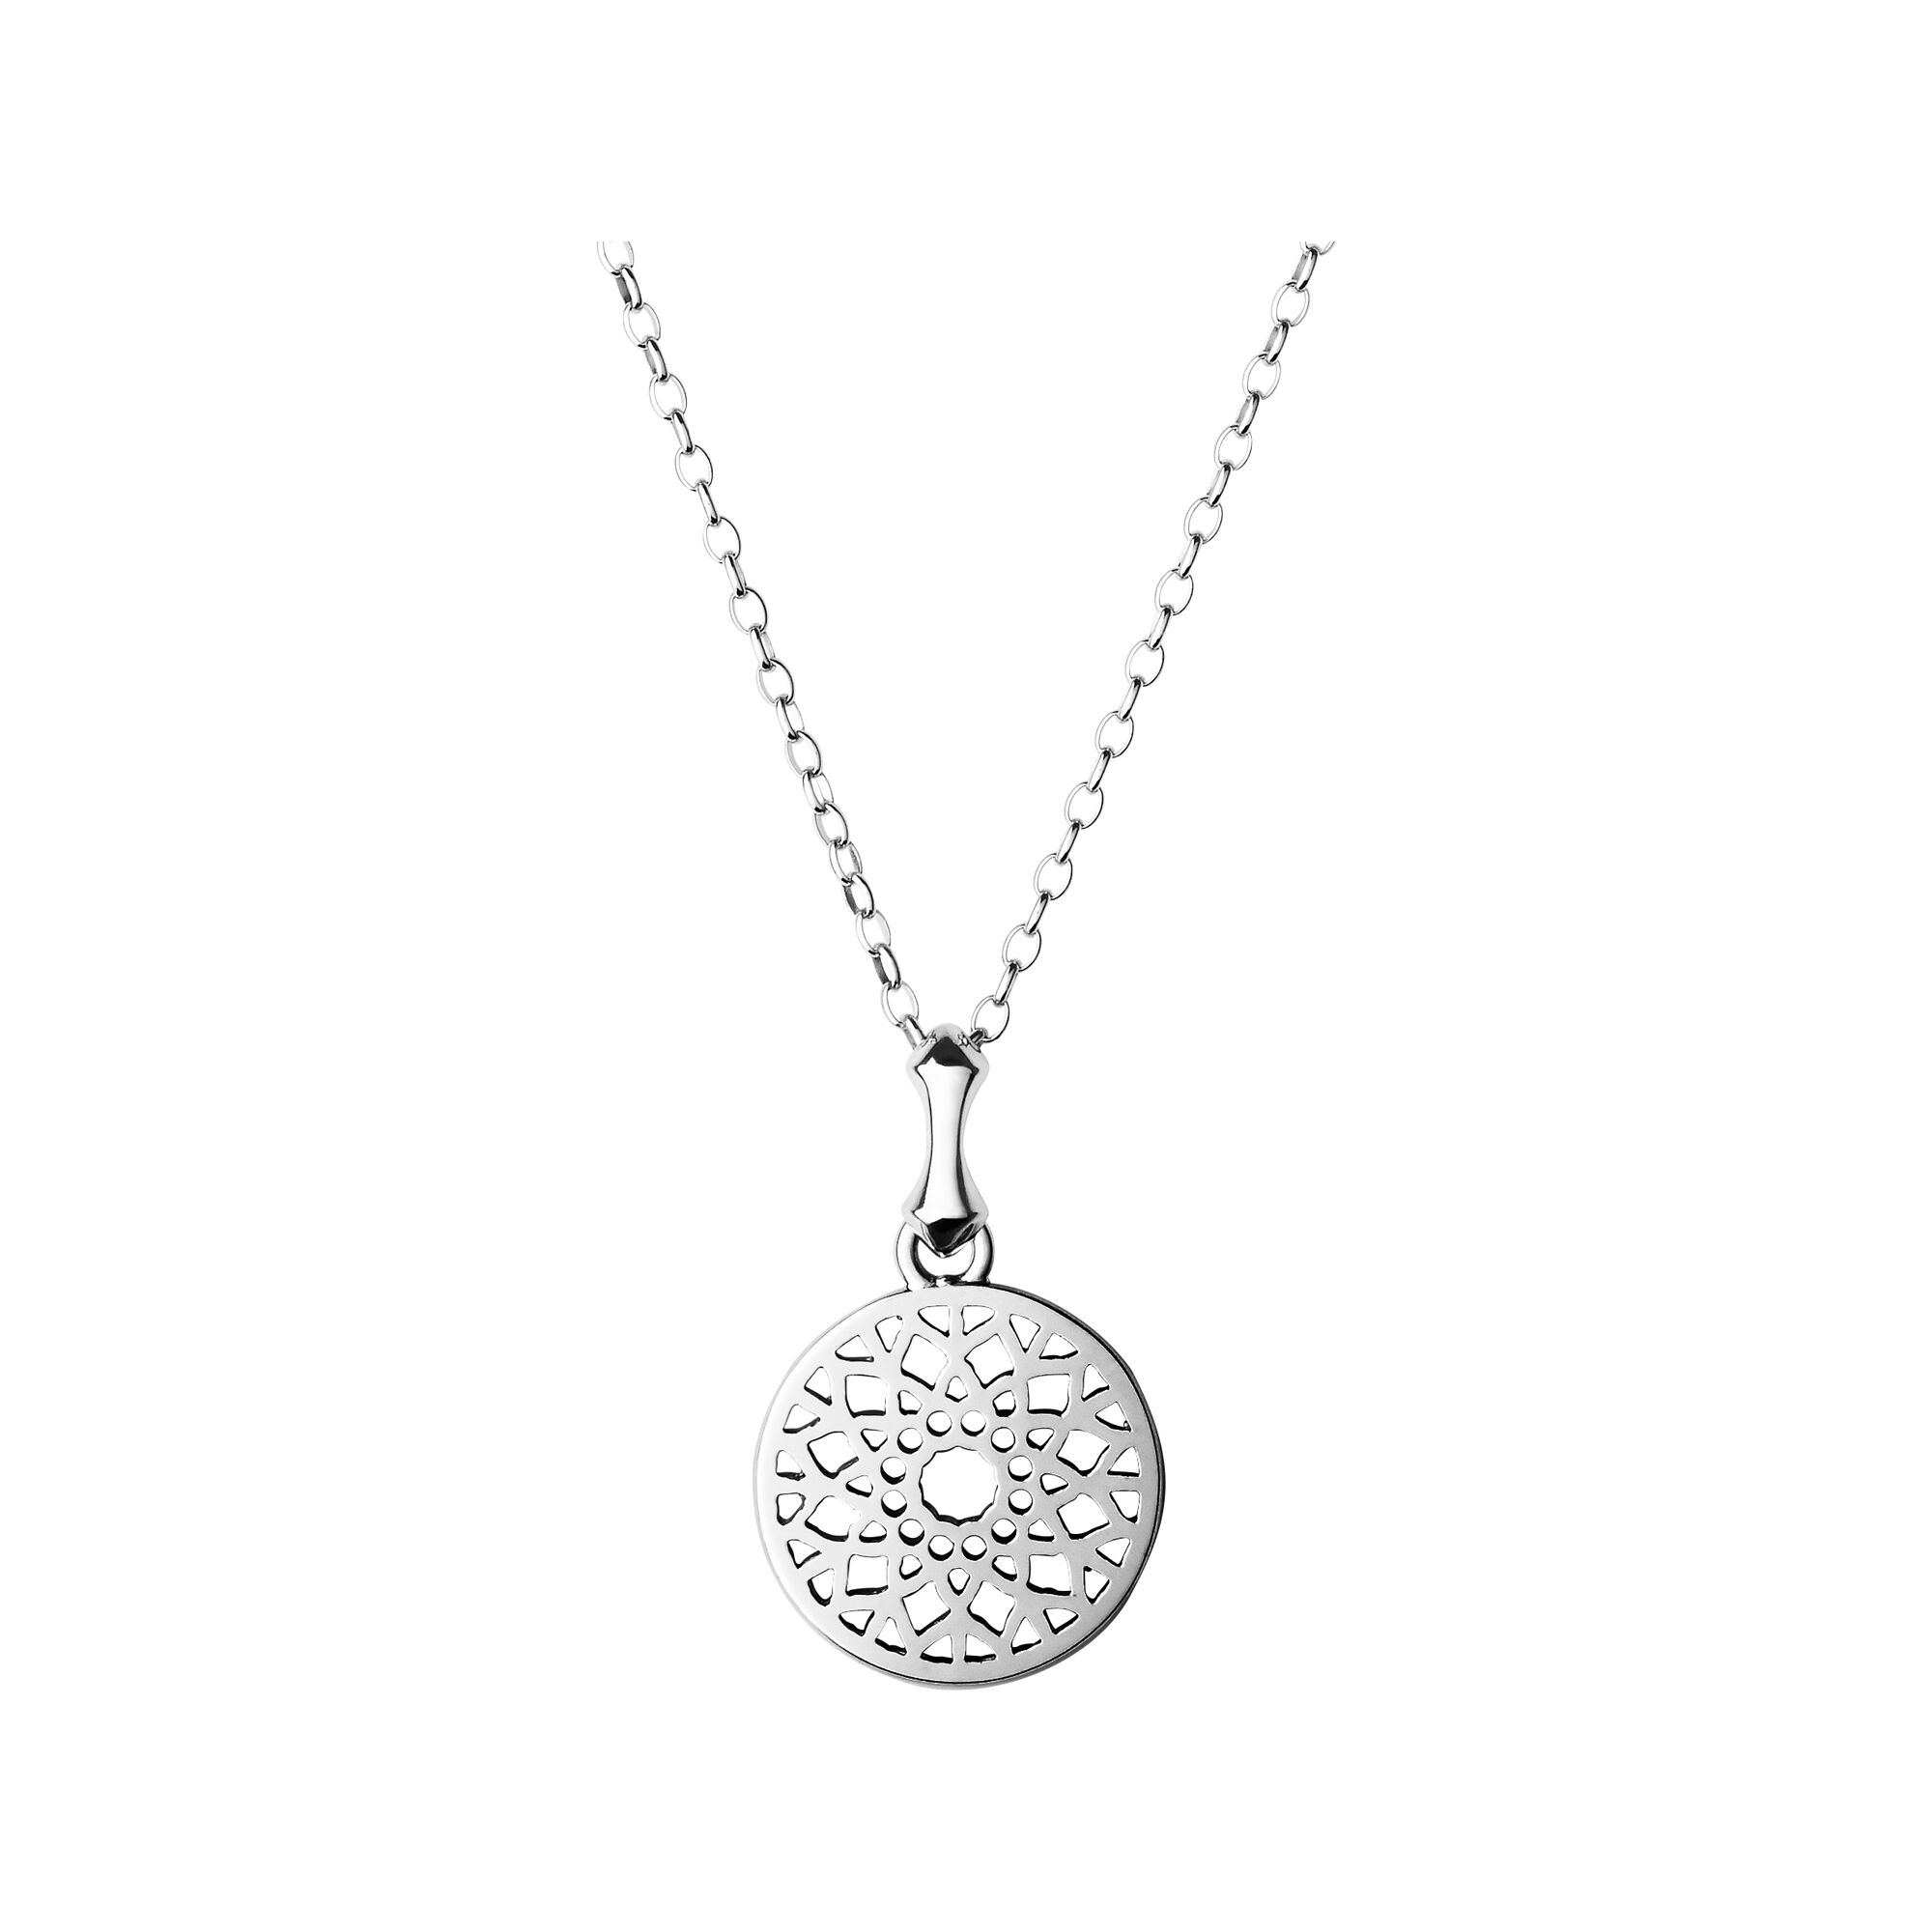 jewellery is silver pendants zodiac itm cancer x image ebay pendant loading sterling crab crabs